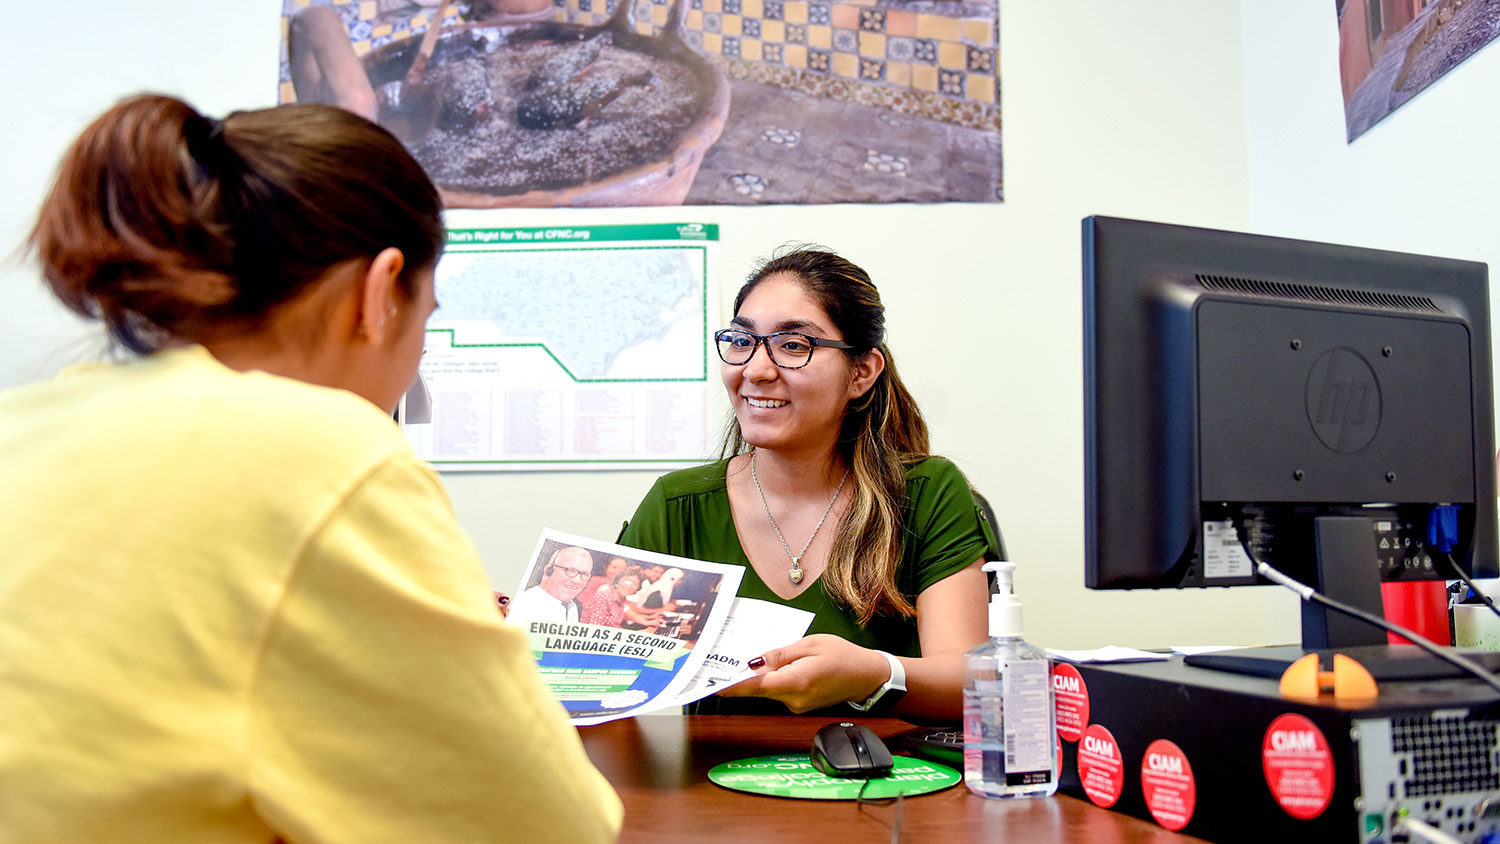 Female NC State student providing information to another female at a desk